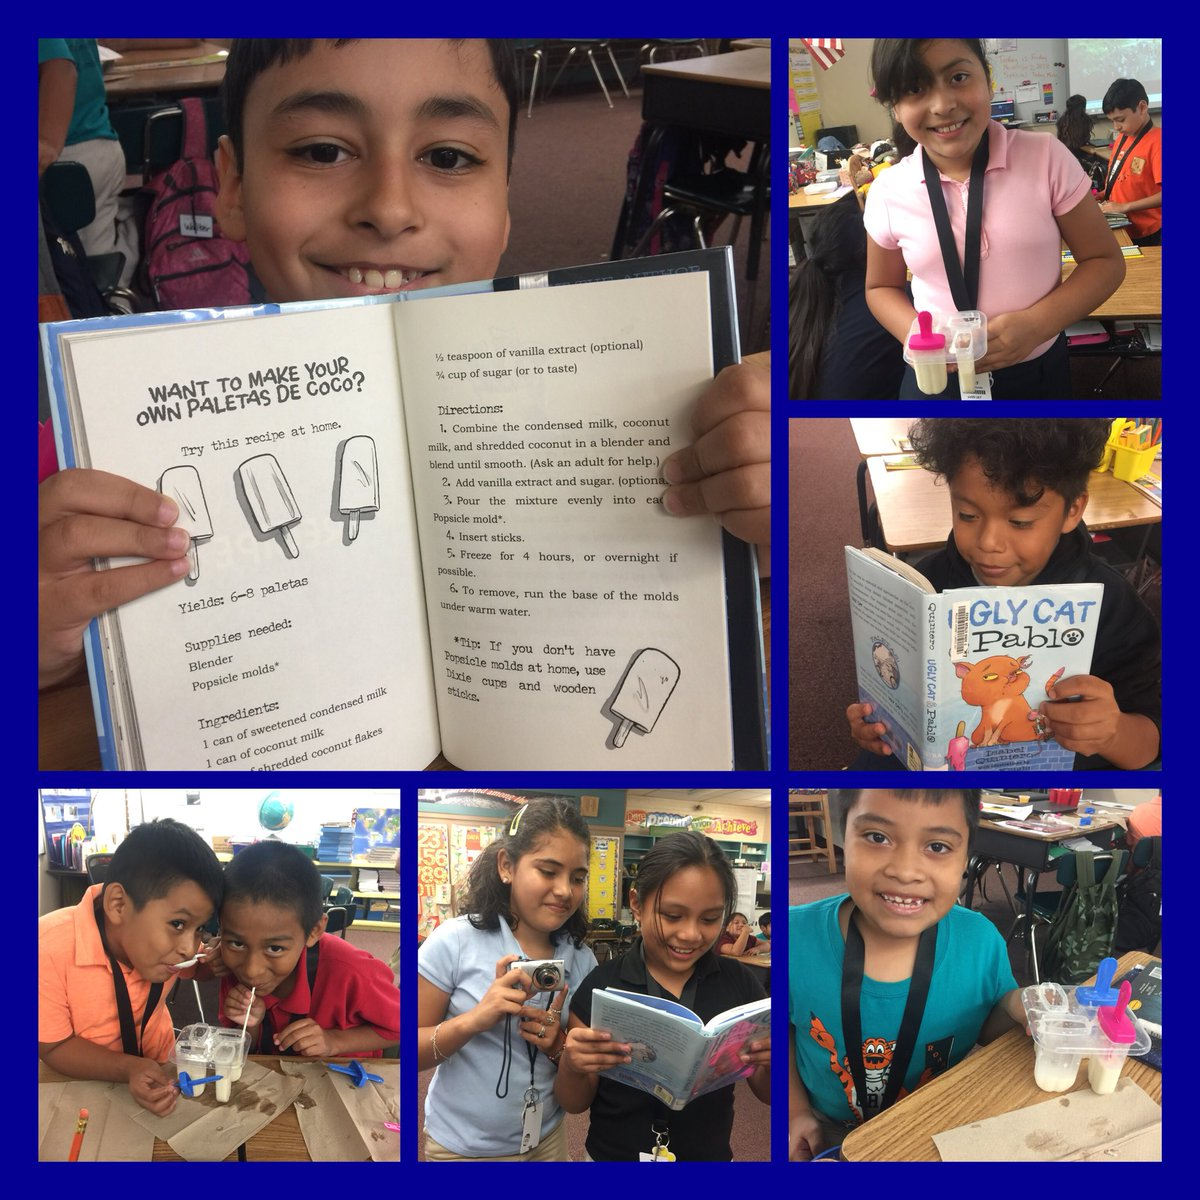 Orange River On Twitter Mrs Cardenas Class Enjoyed Reading The Ssyra Book Ugly Cat And Pablo And Then Made The Same Kind Of Coconut Popsicles The Characters Are Yum Loveleeschools Https T Co Gq75jgq6rt